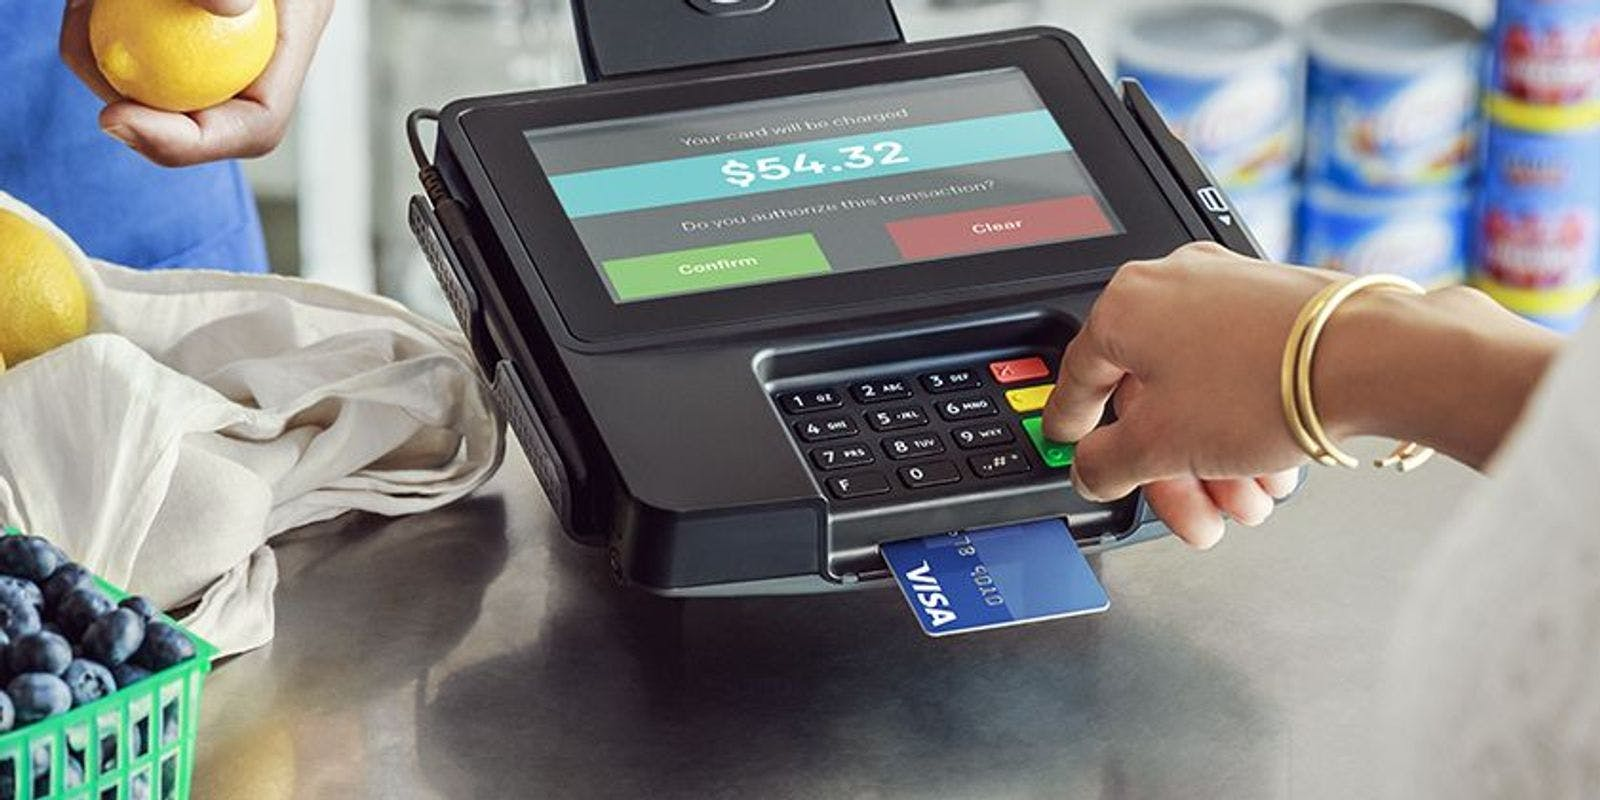 A picture of a payment terminal at a retail store.